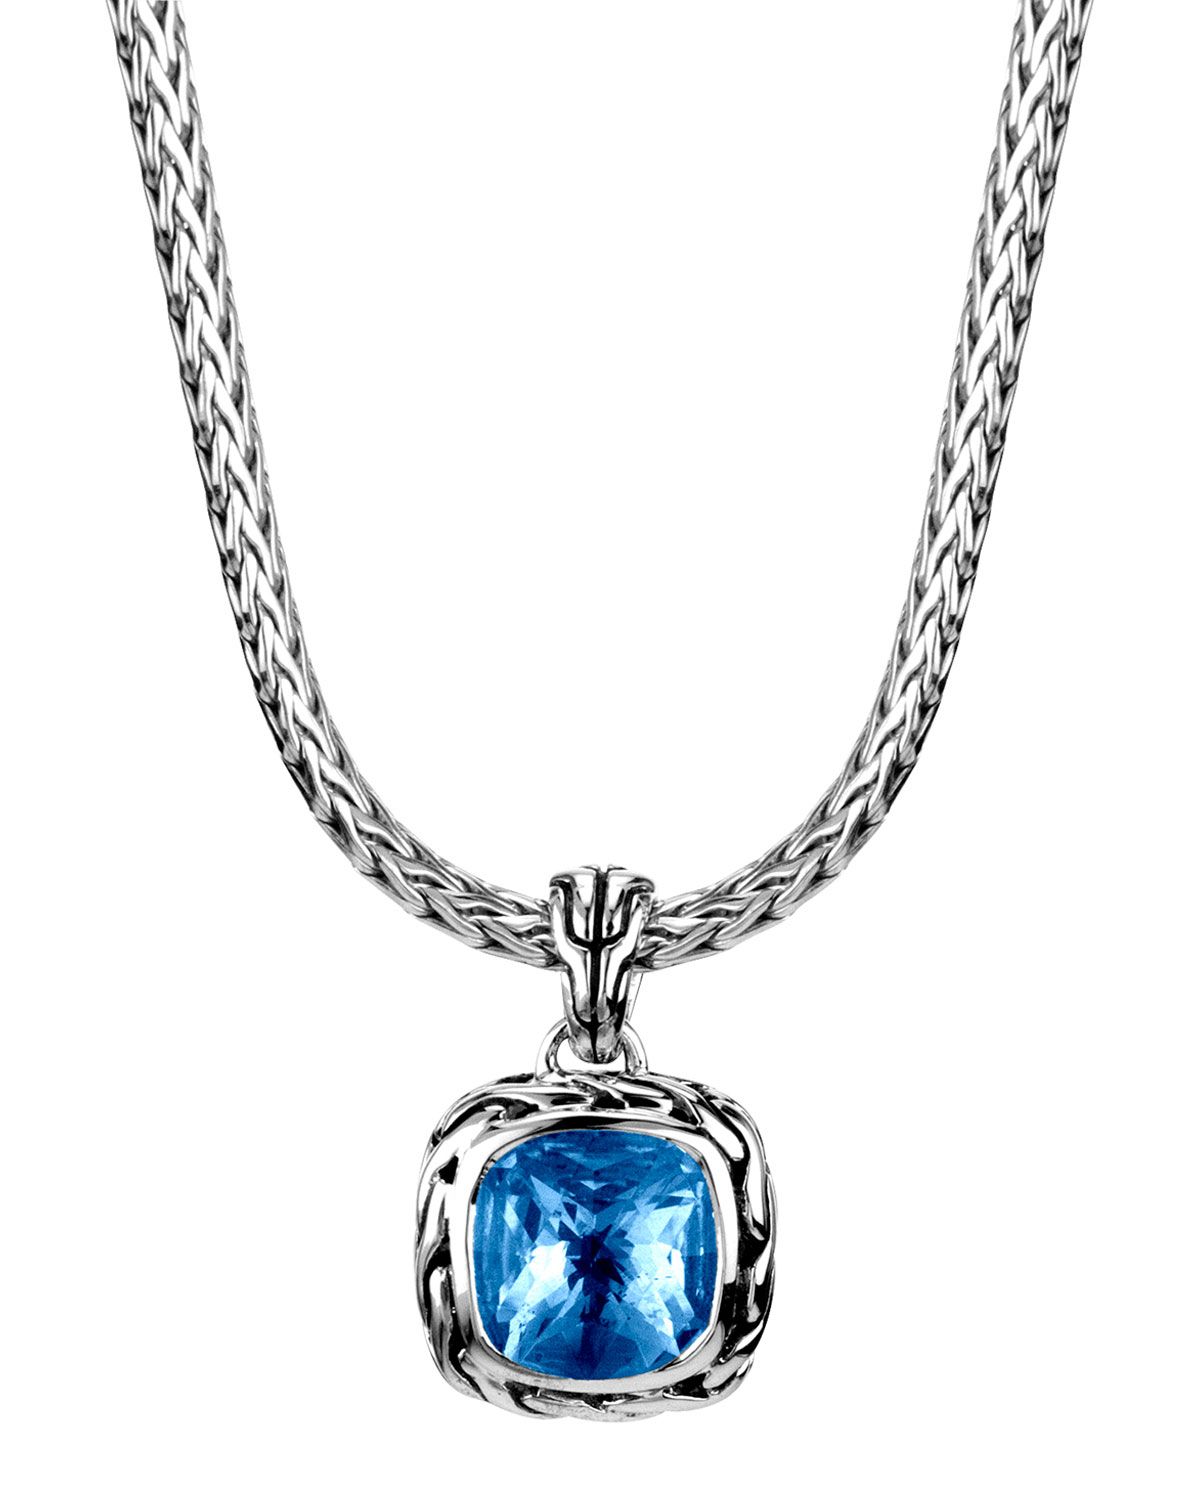 John hardy batu classic chain london blue topaz pendant for John hardy jewelry factory bali